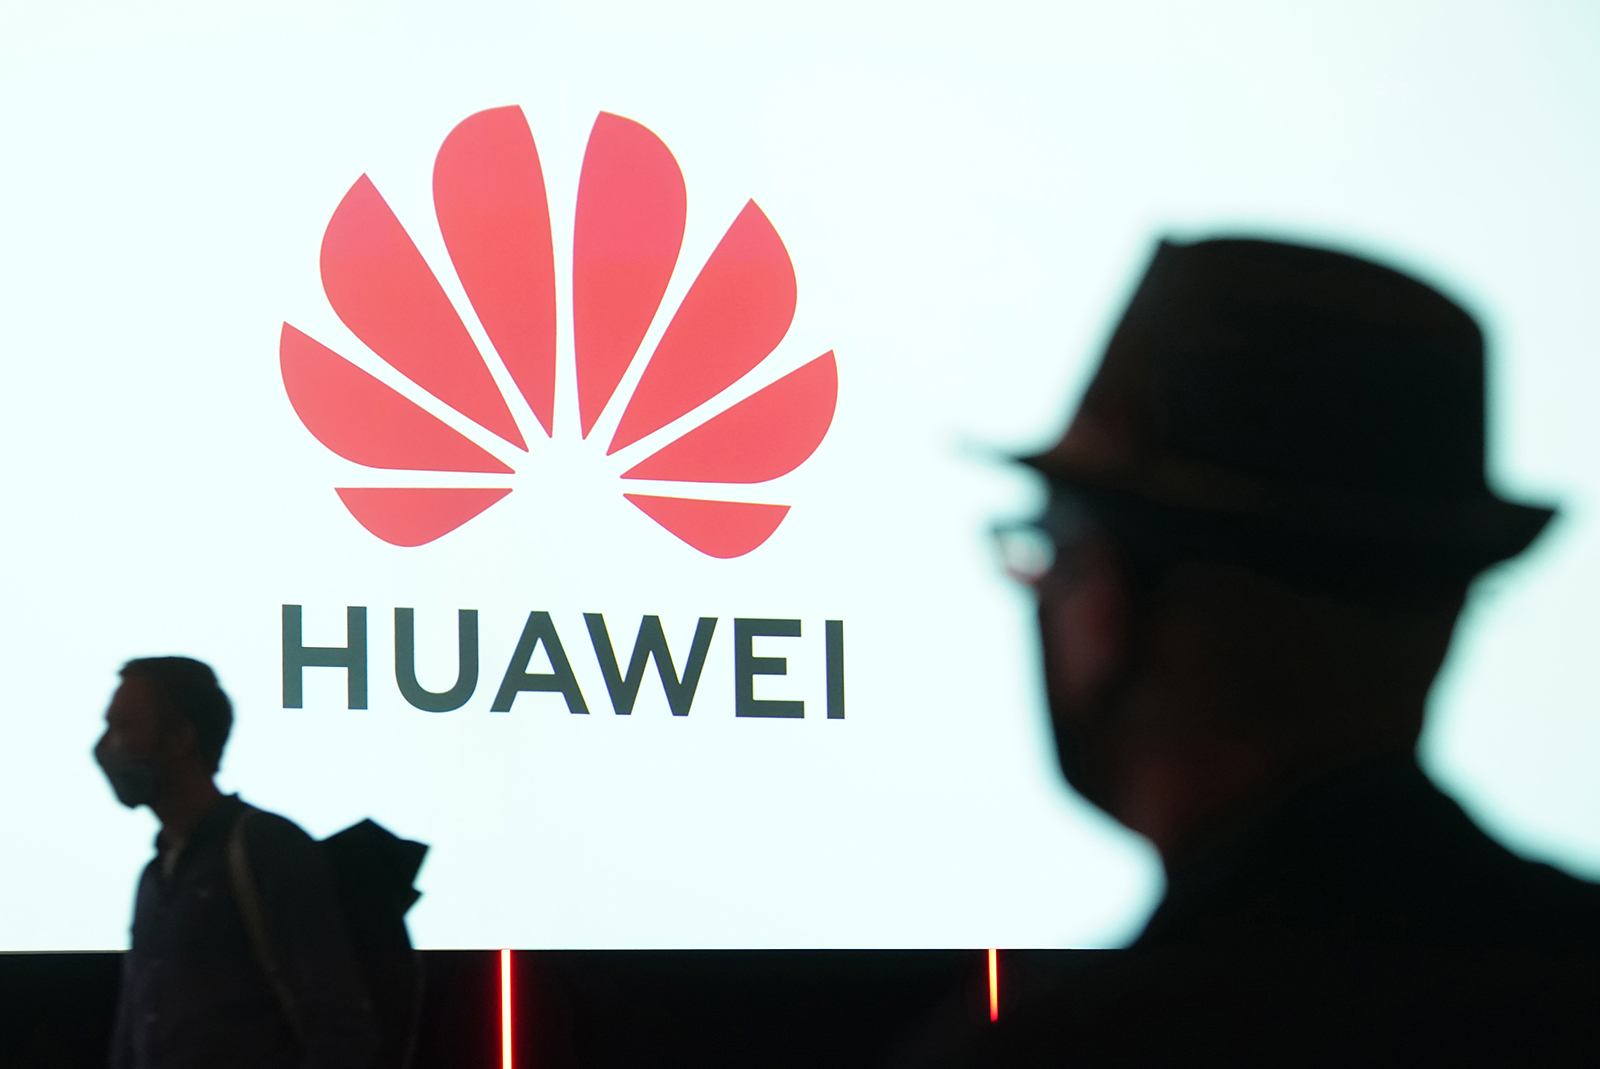 Huawei's sales growth slows as US sanctions bite